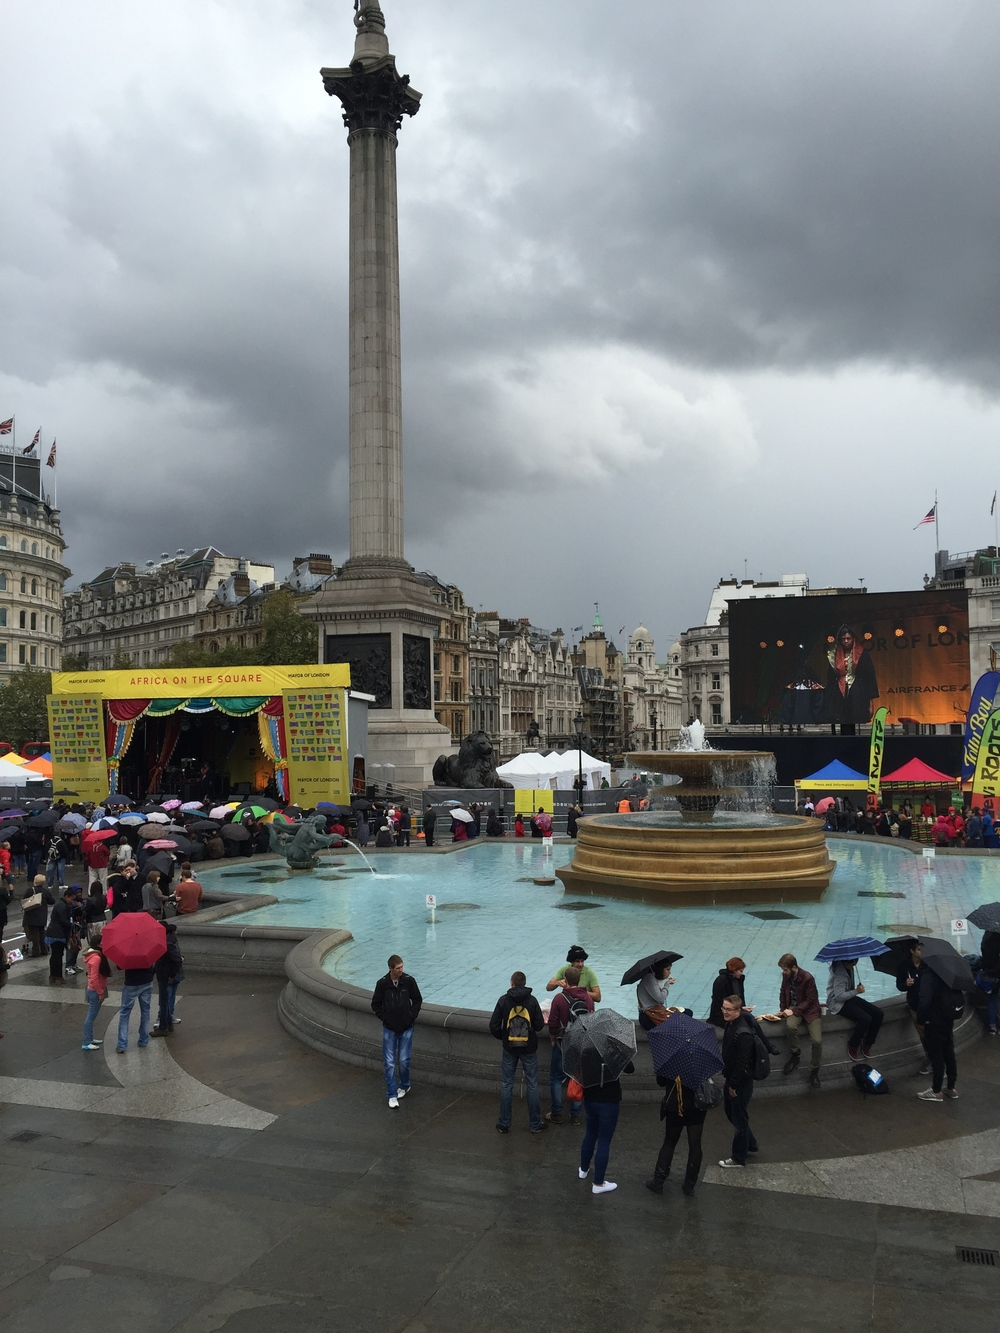 It was drizzling from Trafalgar Square.